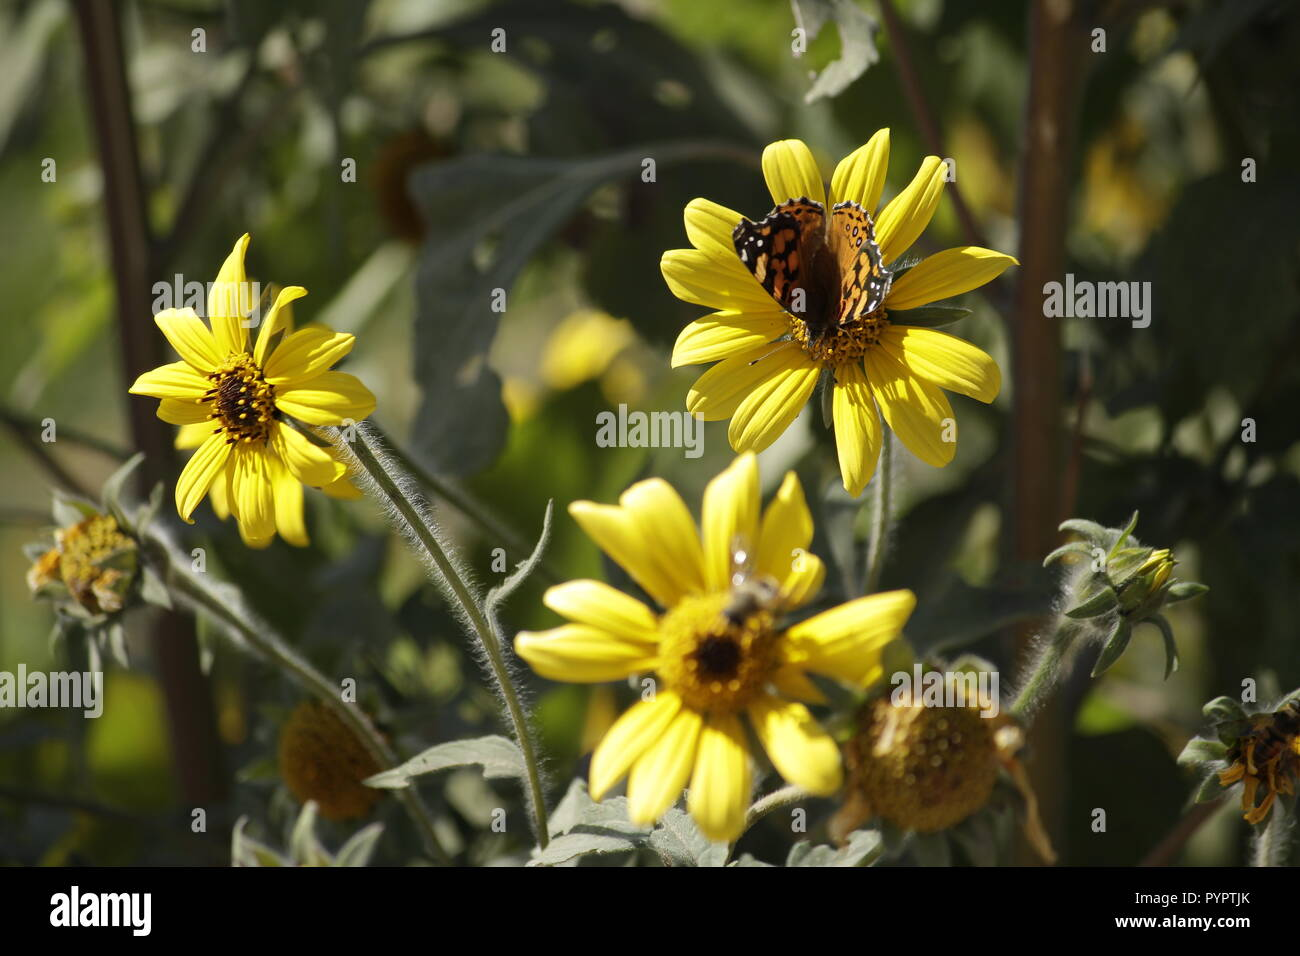 Butterfly feeding on nectar from wild sunflowers. - Stock Image